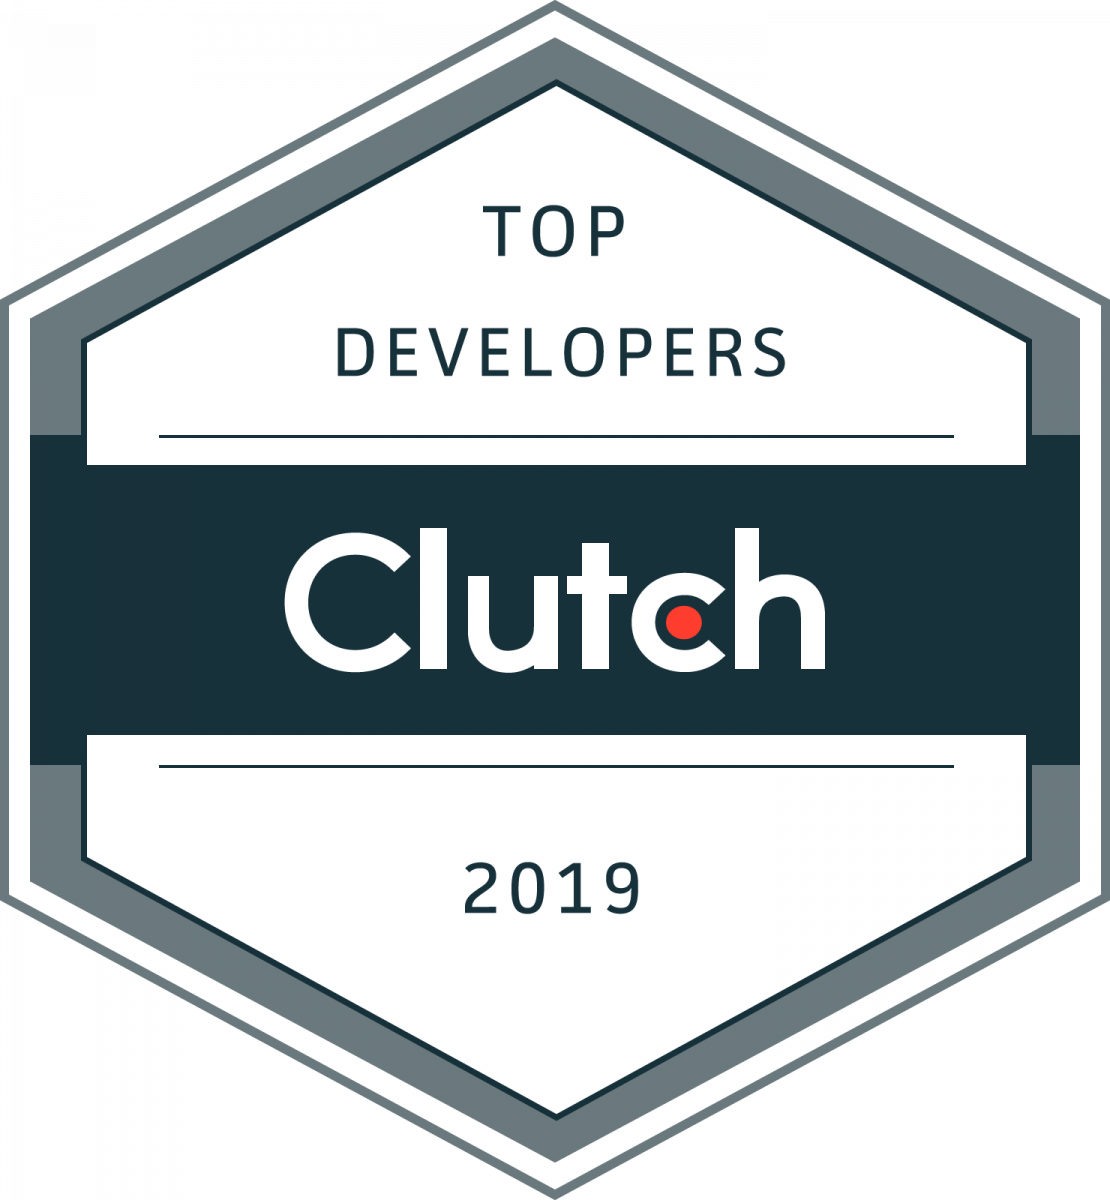 Top Developers Clutch Award